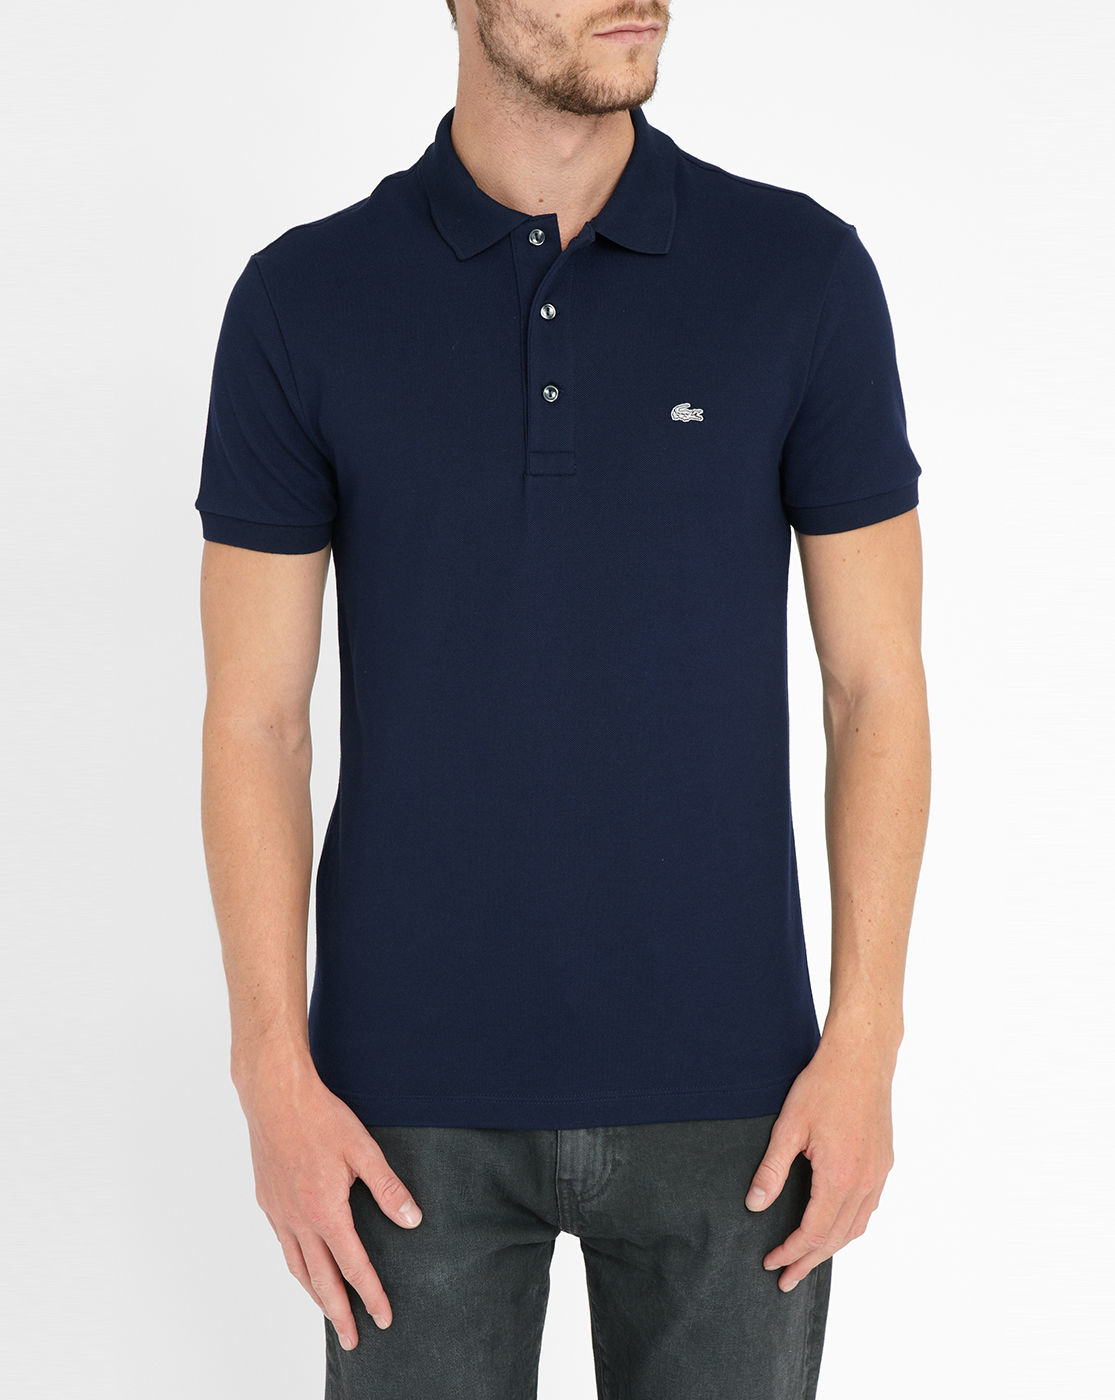 lacoste navy blue logo short sleeve slim fit elastane polo. Black Bedroom Furniture Sets. Home Design Ideas